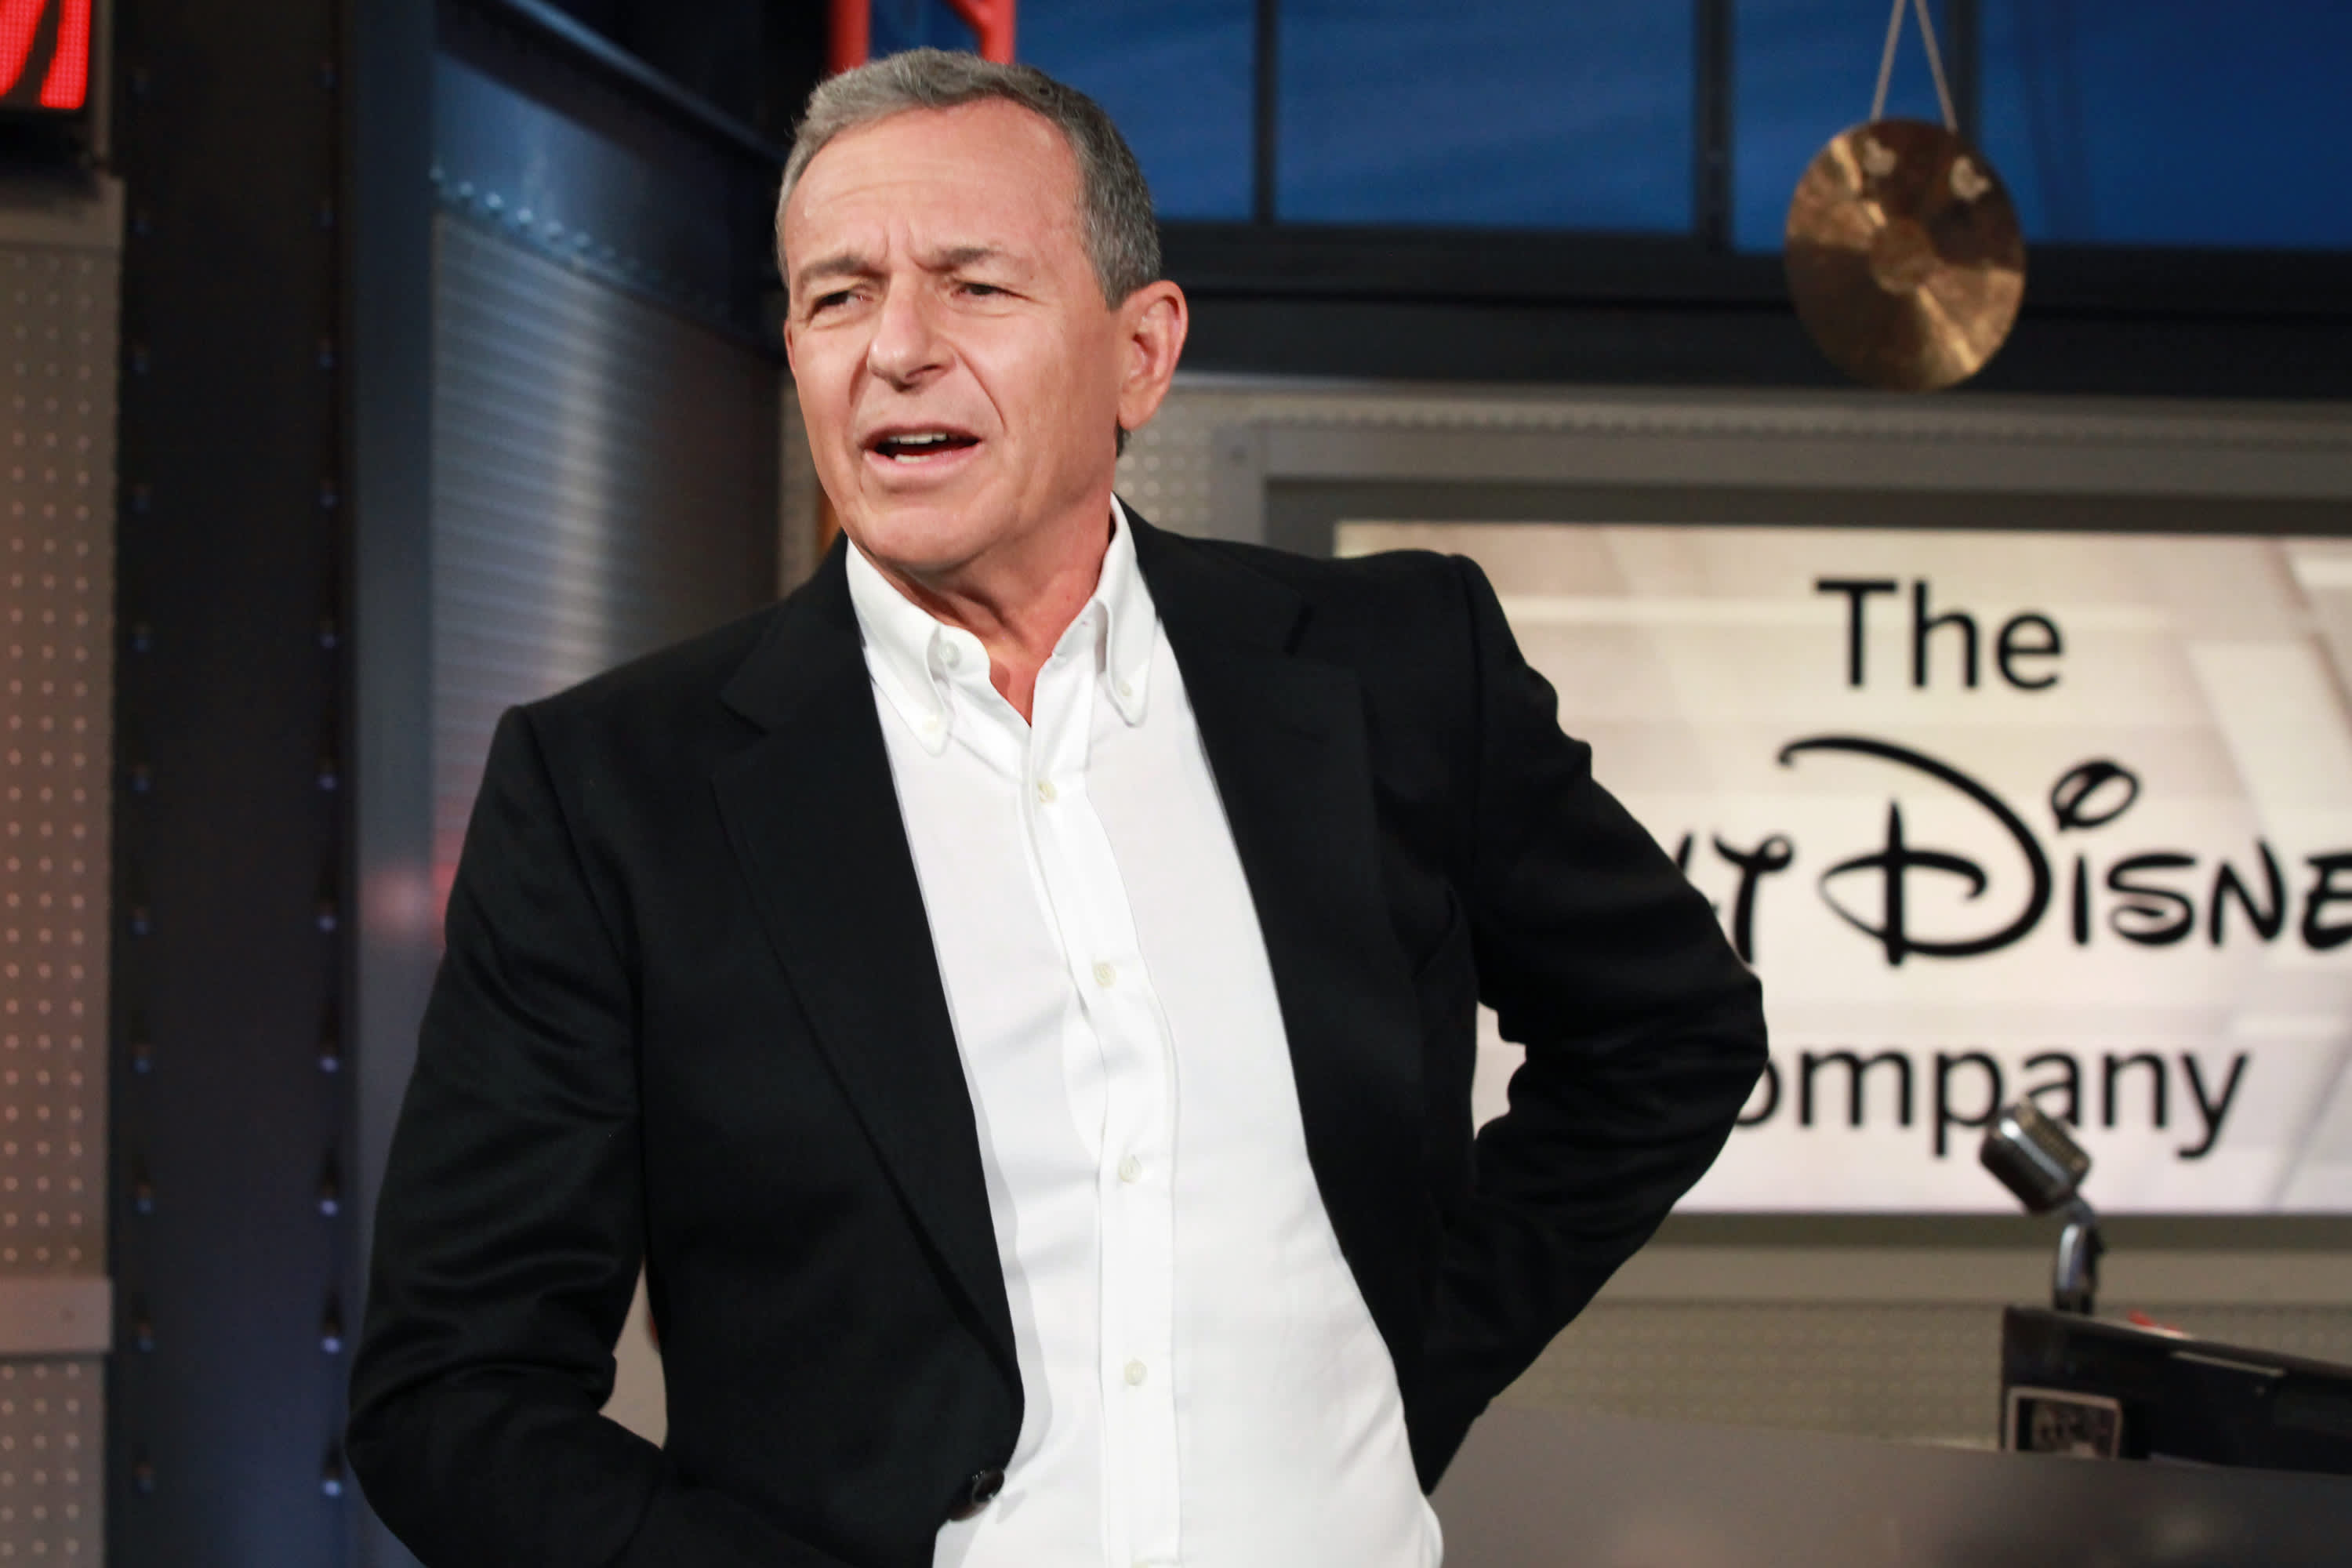 Bob Iger on why Disney walked away from Twitter: 'The nastiness is extraordinary'